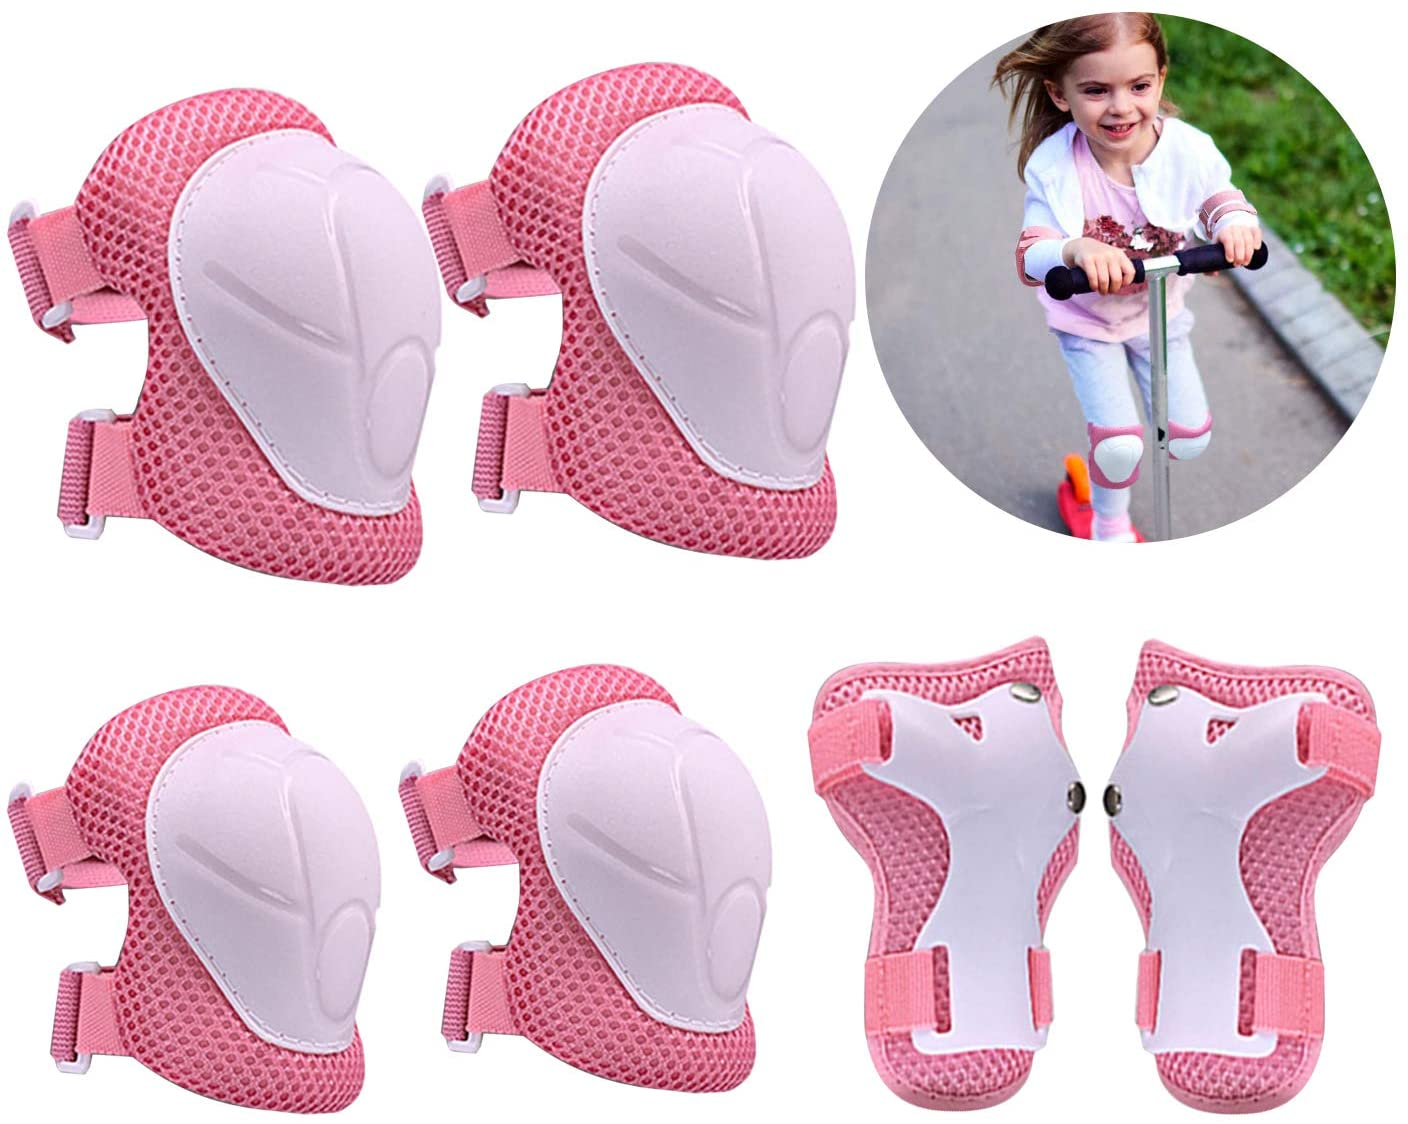 Kids Protective Gear Set Knee Pads Wrist Pads for 3~10 Years, Hebests Wrist Guard and Adjustable Strap for Rollerblading Skateboard Cycling Skating Bike Scooter, Pink